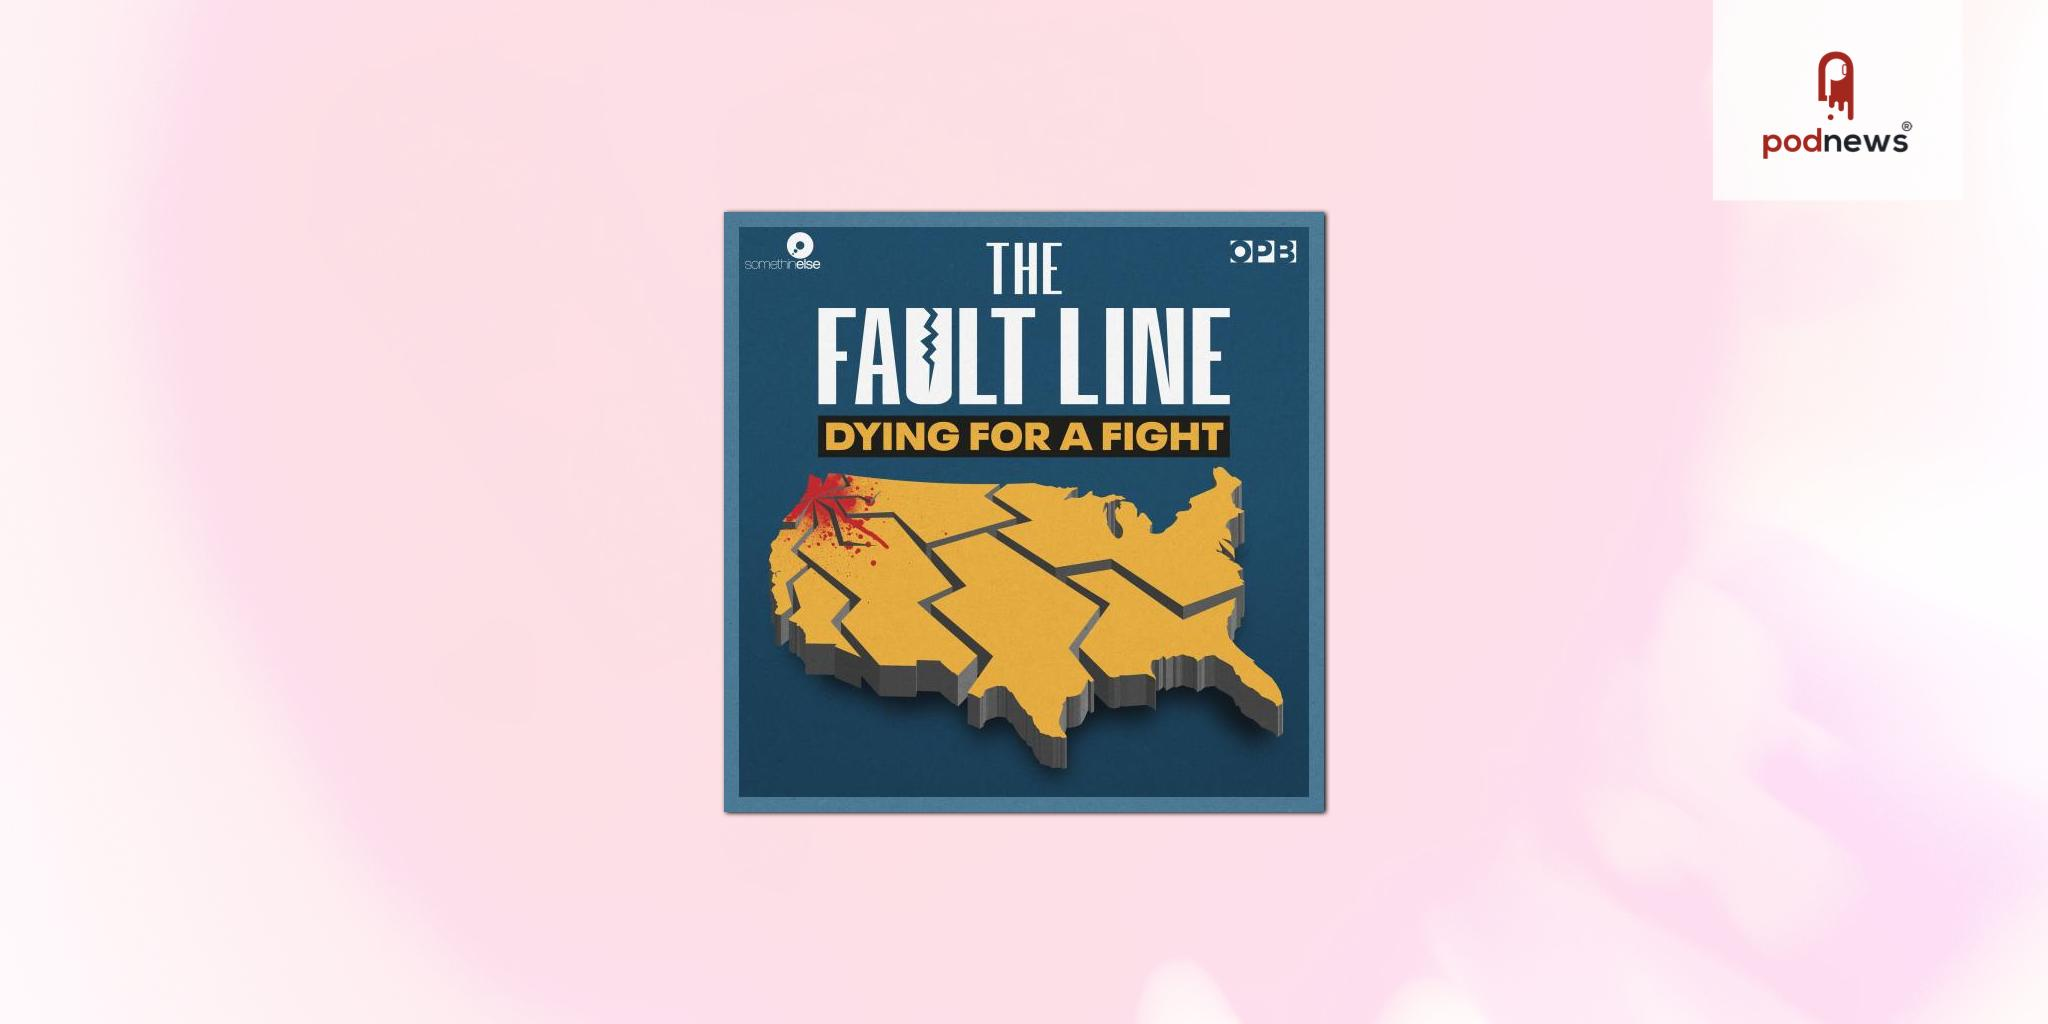 'Dying for a Fight', new season of investigative podcast series 'The Fault Line', examines unsolved killing